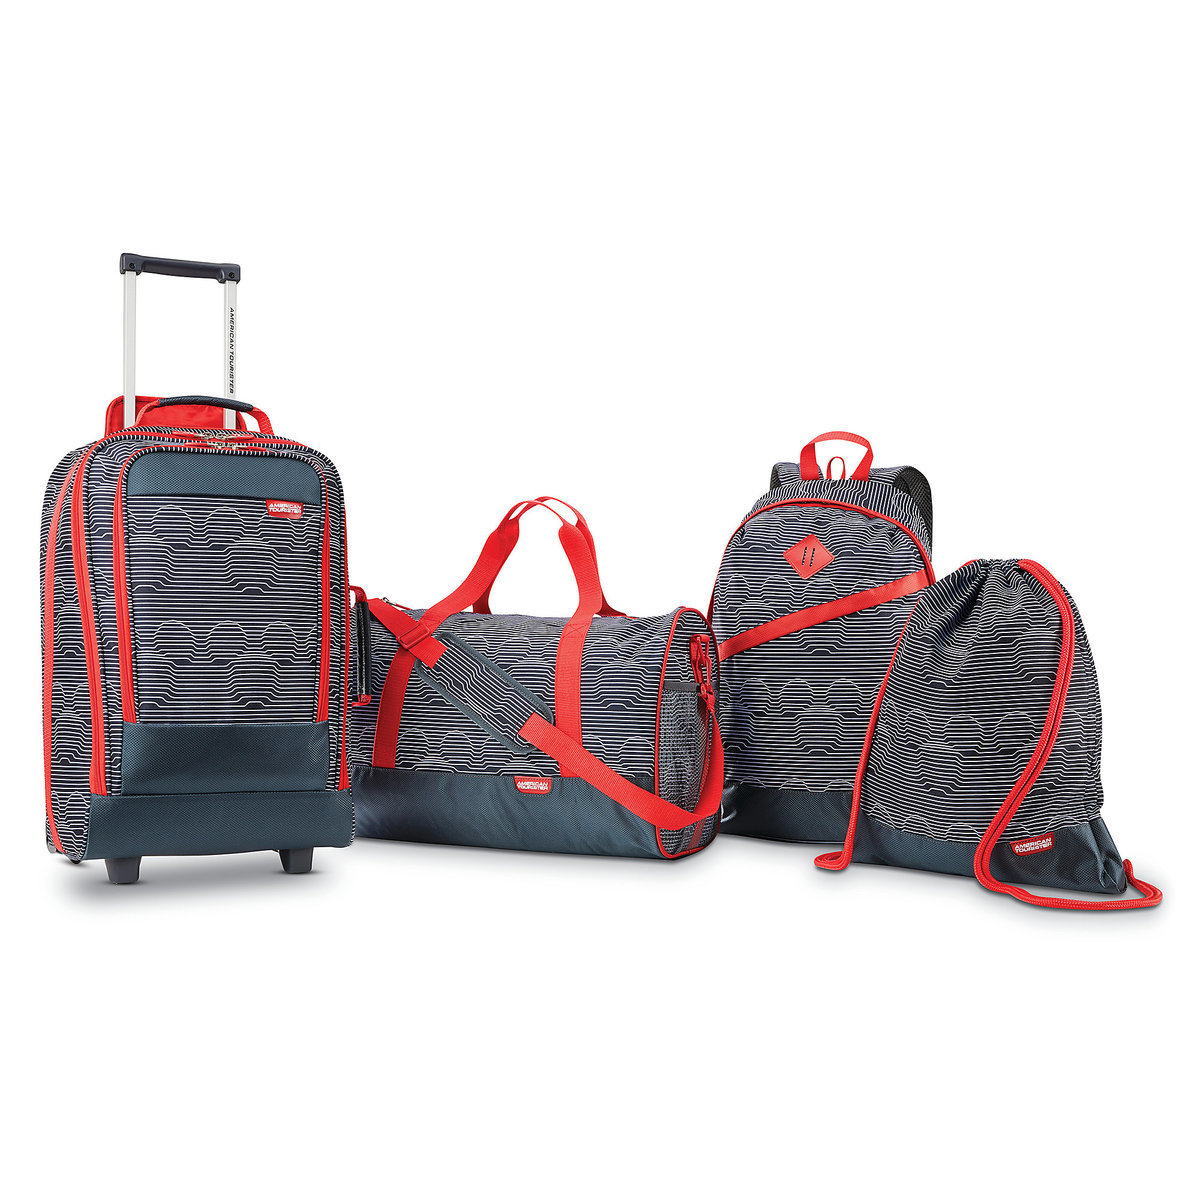 49f48e98e96 Product Image of Mickey Mouse Luggage Set by American Tourister   1